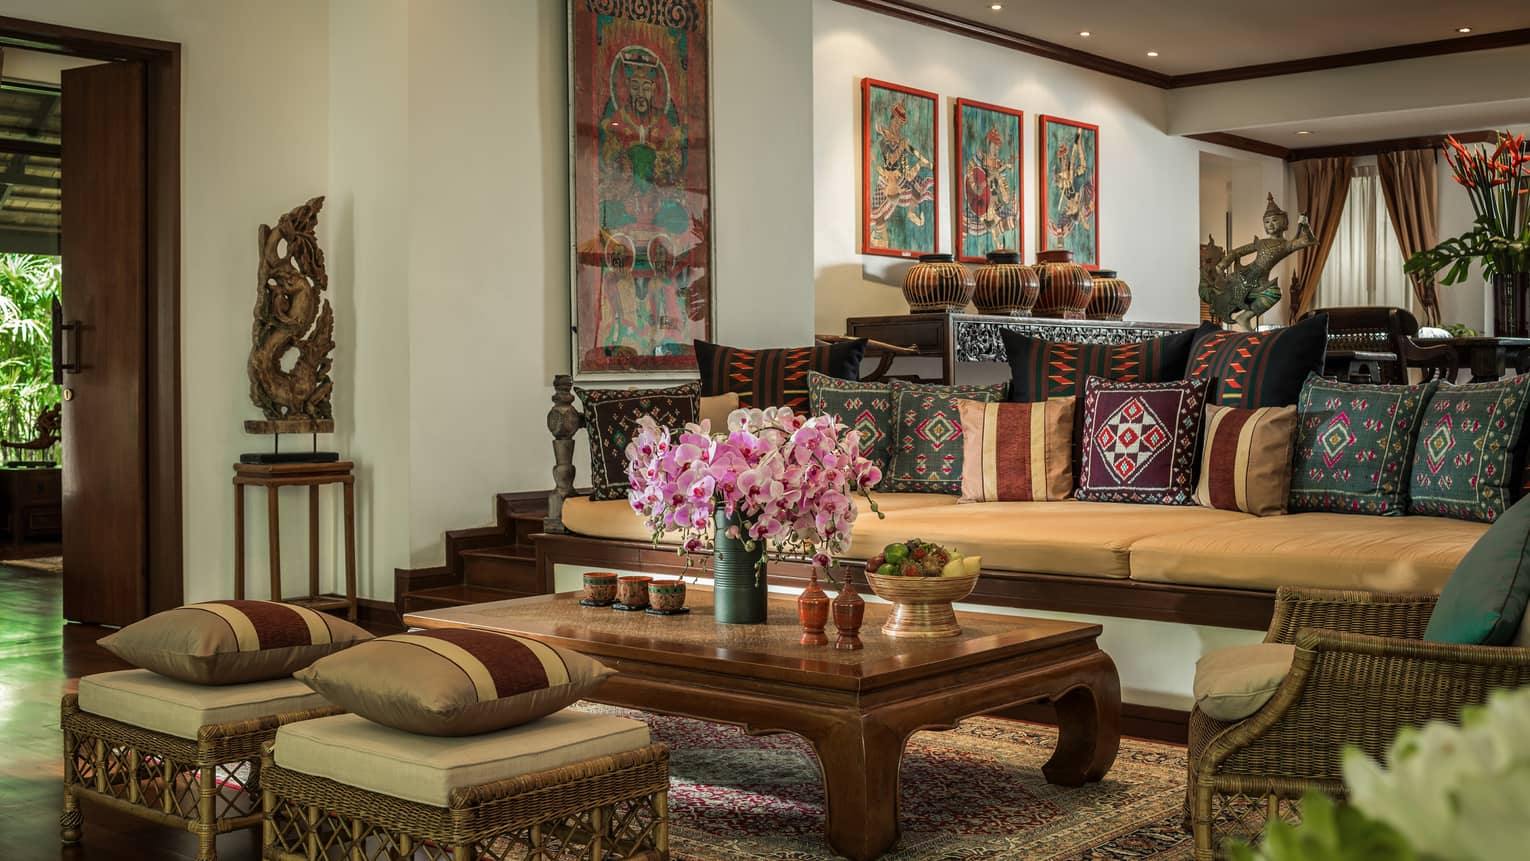 Residence living room with long sofa and two ottomans covered with Thailand textile pillows, wood table